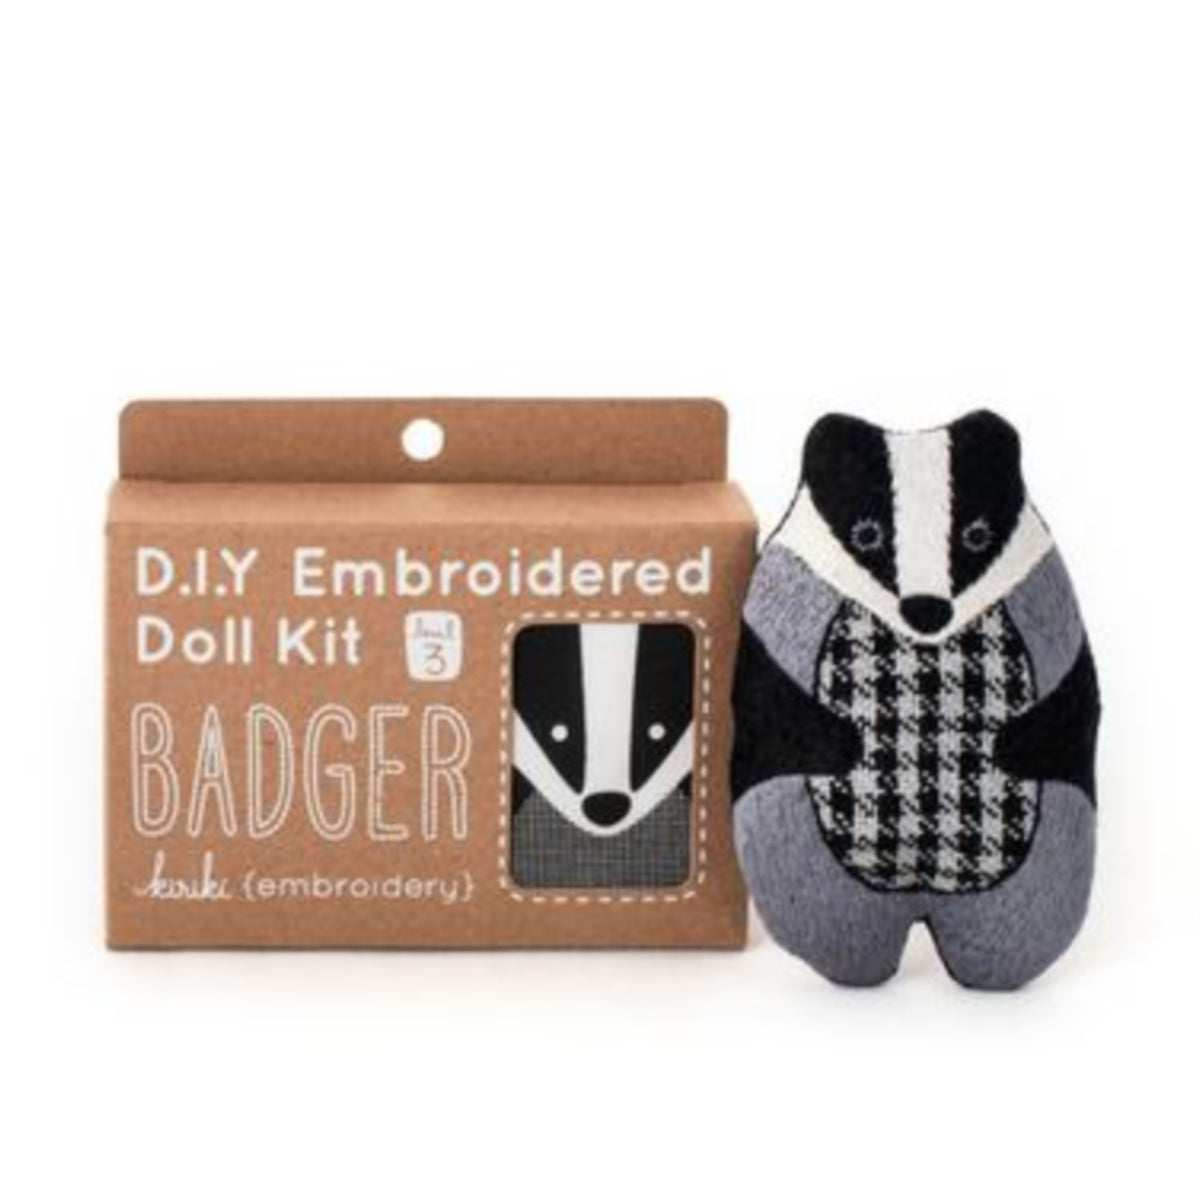 Badger Doll Embroidery Kit by Kiriki Press Embroidery Kit - Snuggly Monkey